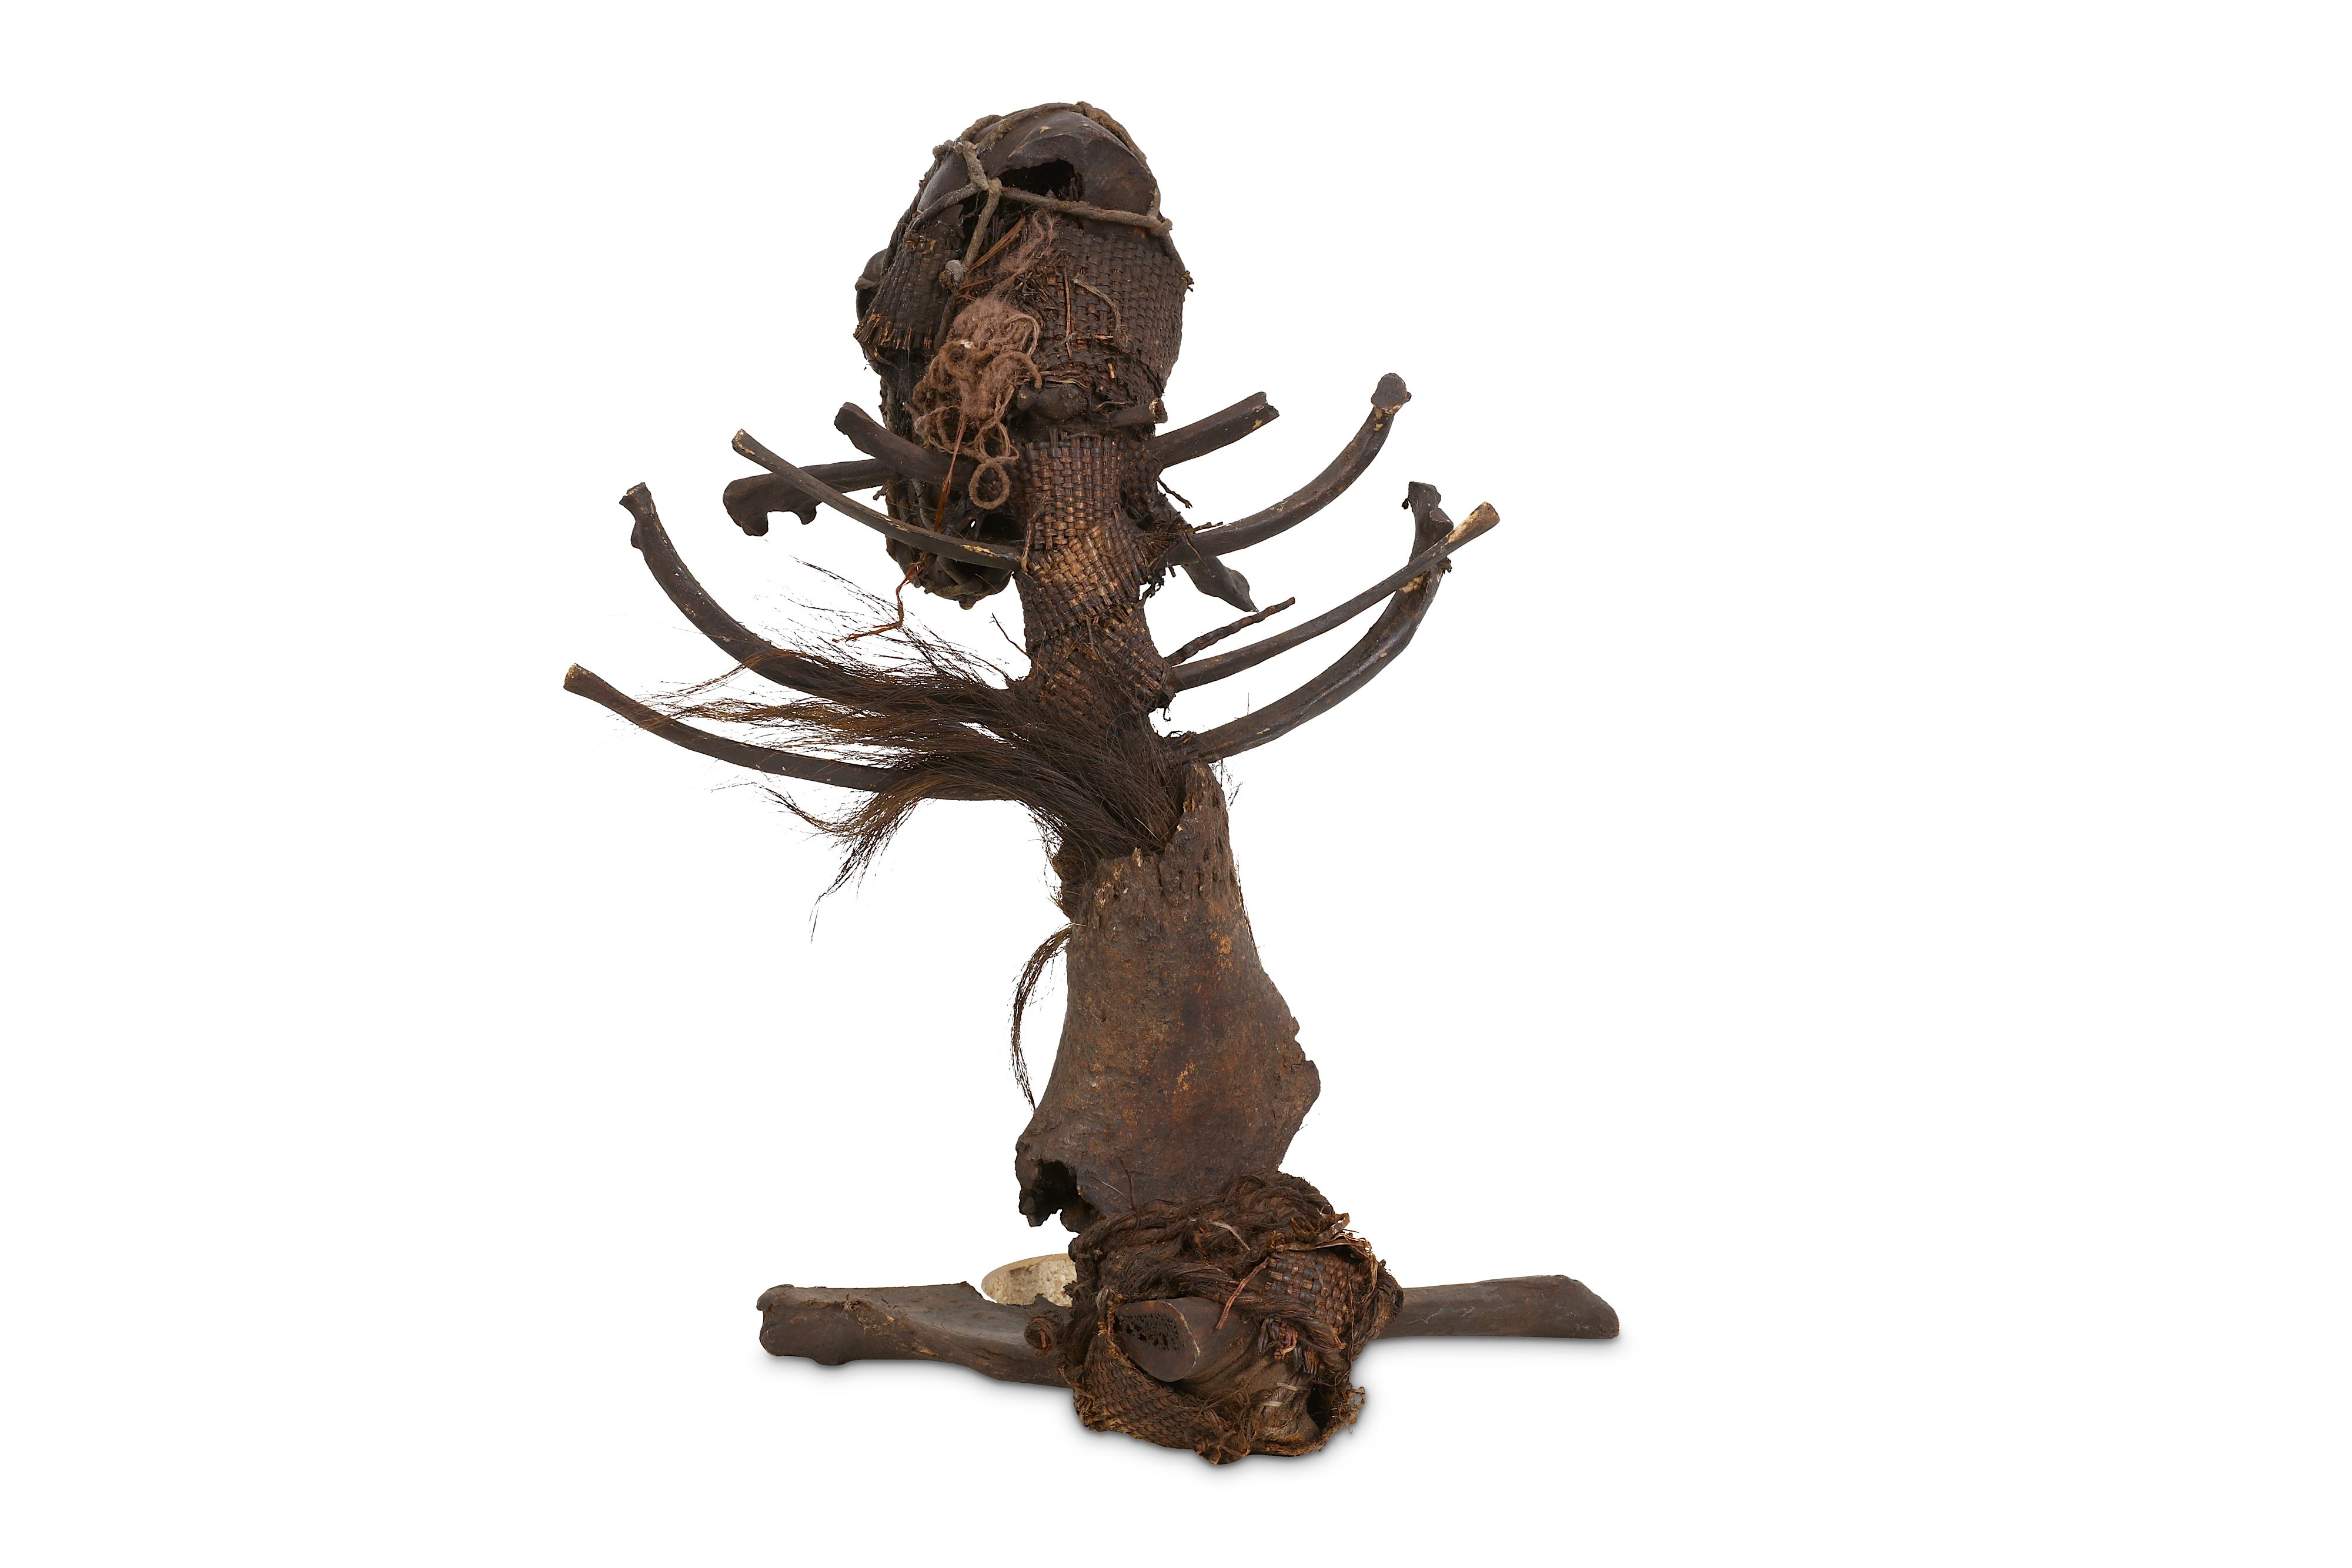 A 19TH CENTURY AFRICAN WITCH DOCTOR STAFF (FETISH) FORMED FROM MONKEY REMAINS - Image 2 of 2